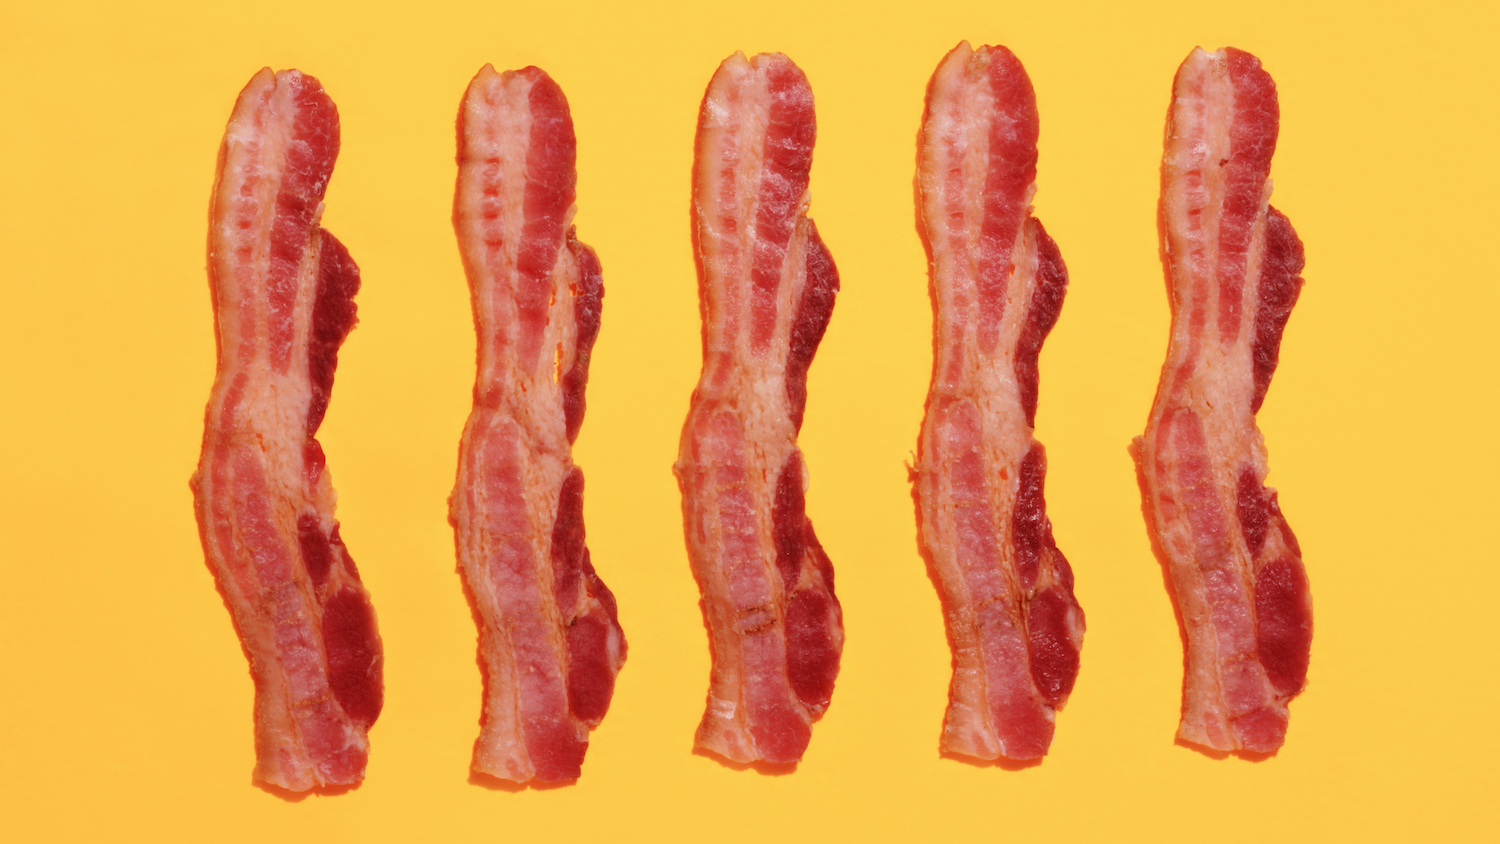 Bacon camp